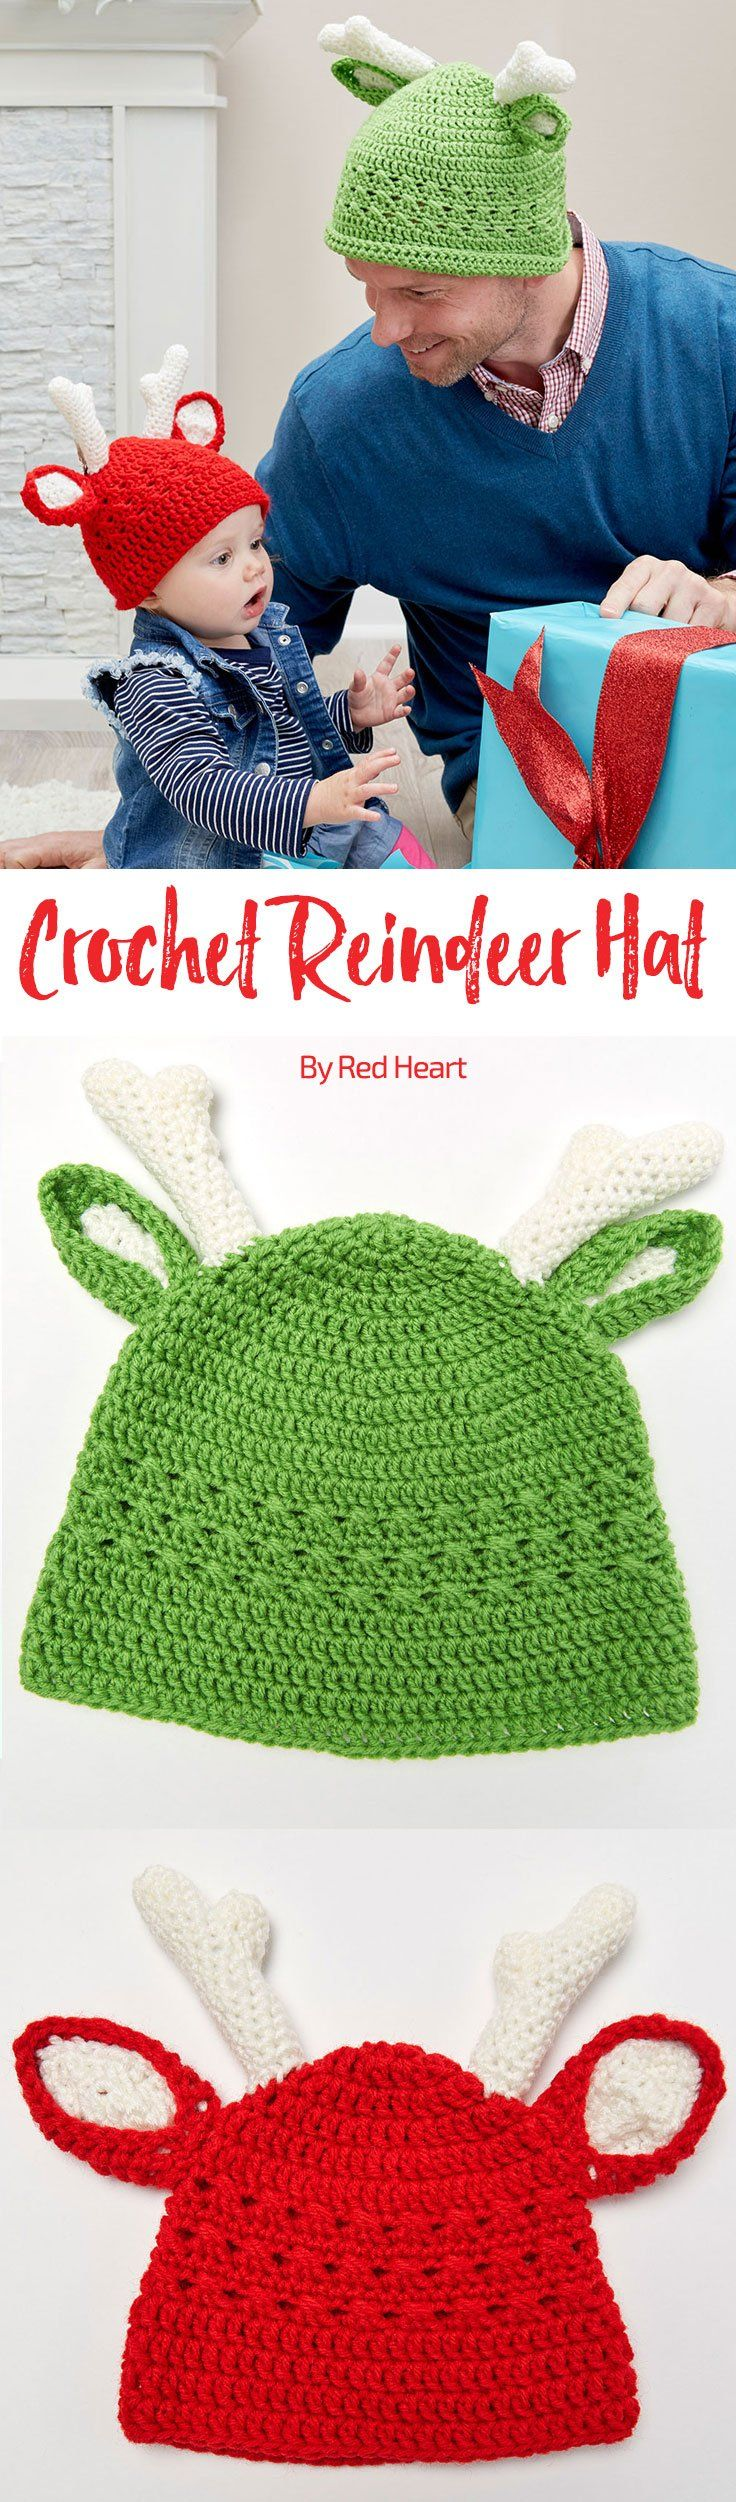 Reindeer Crochet Hats in Super Saver. Crochet a family of reindeer hats for the perfect holiday photo op! We've included five sizes to make it easy to fit everyone. This fun hat design has ears with antlers for the crowning touch.